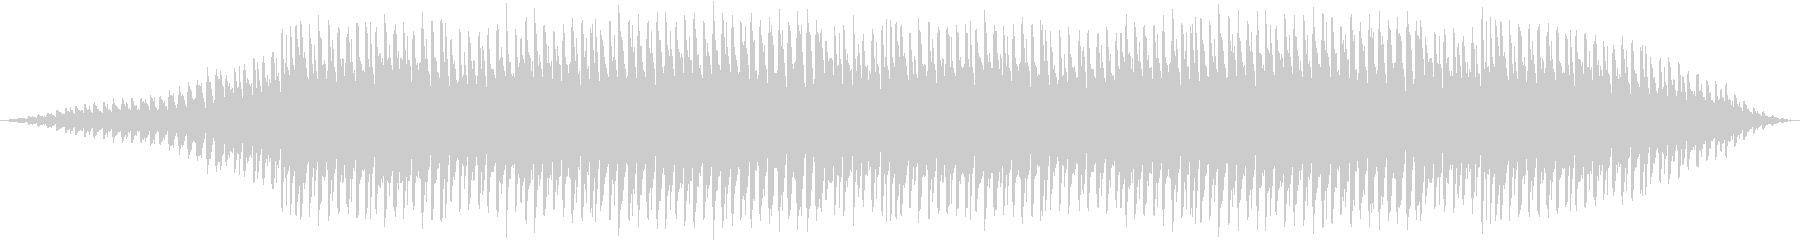 Marching band with a pleasant candy's unreproduced waveform